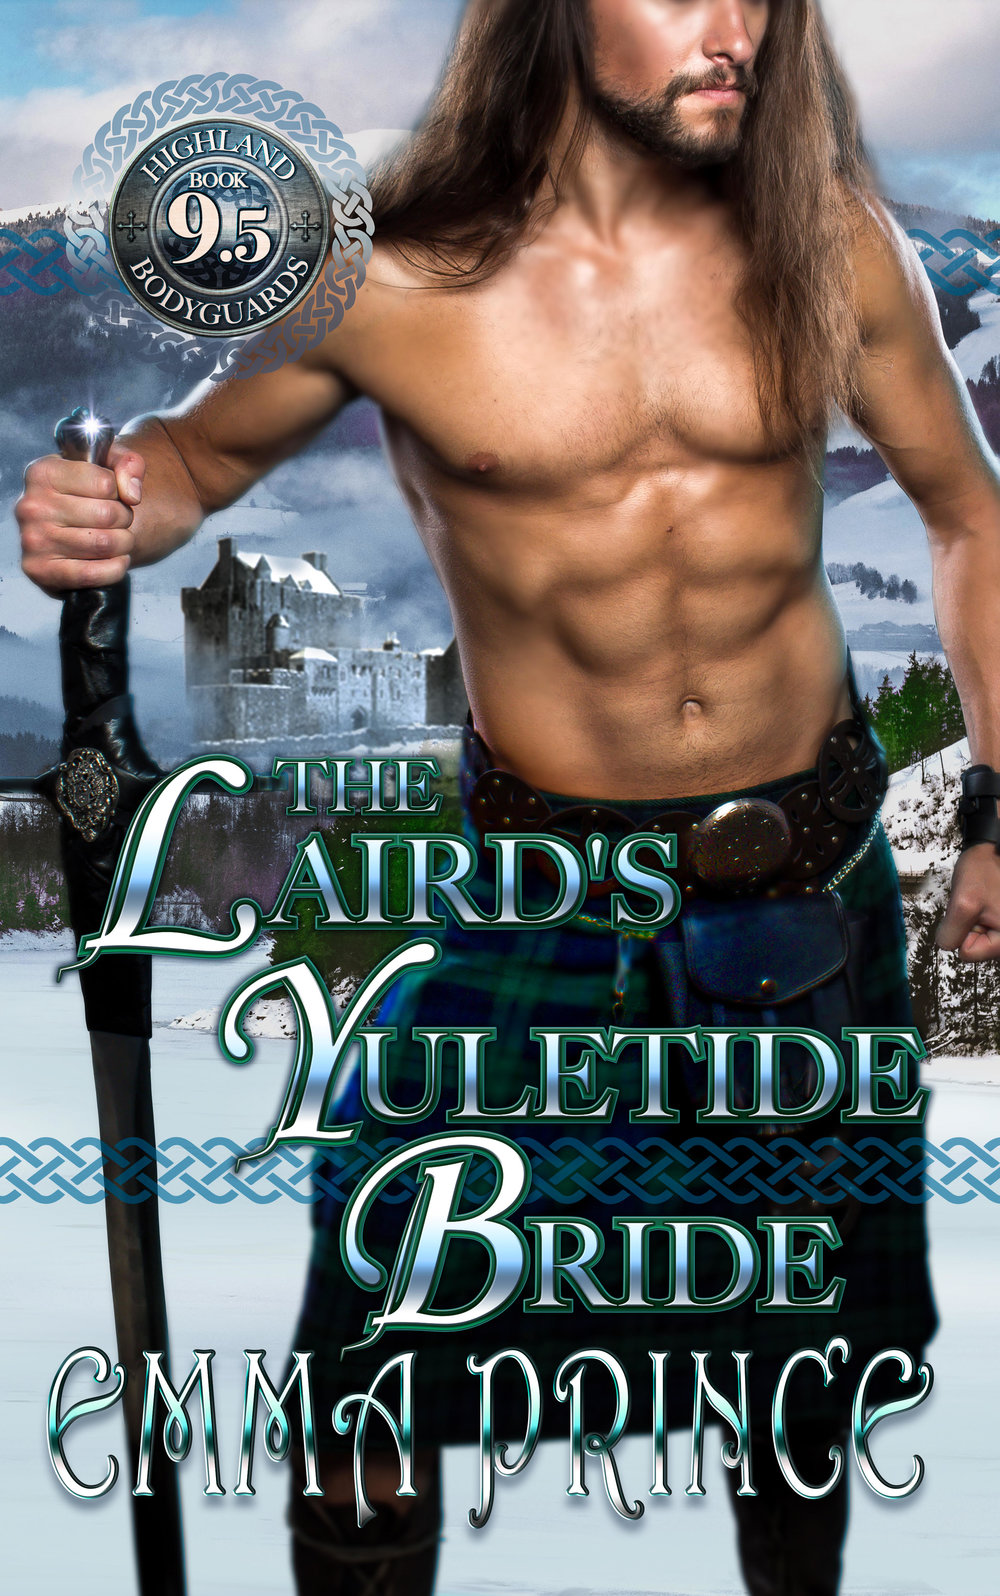 The Laird's Yuletide Bride cover 2.jpg